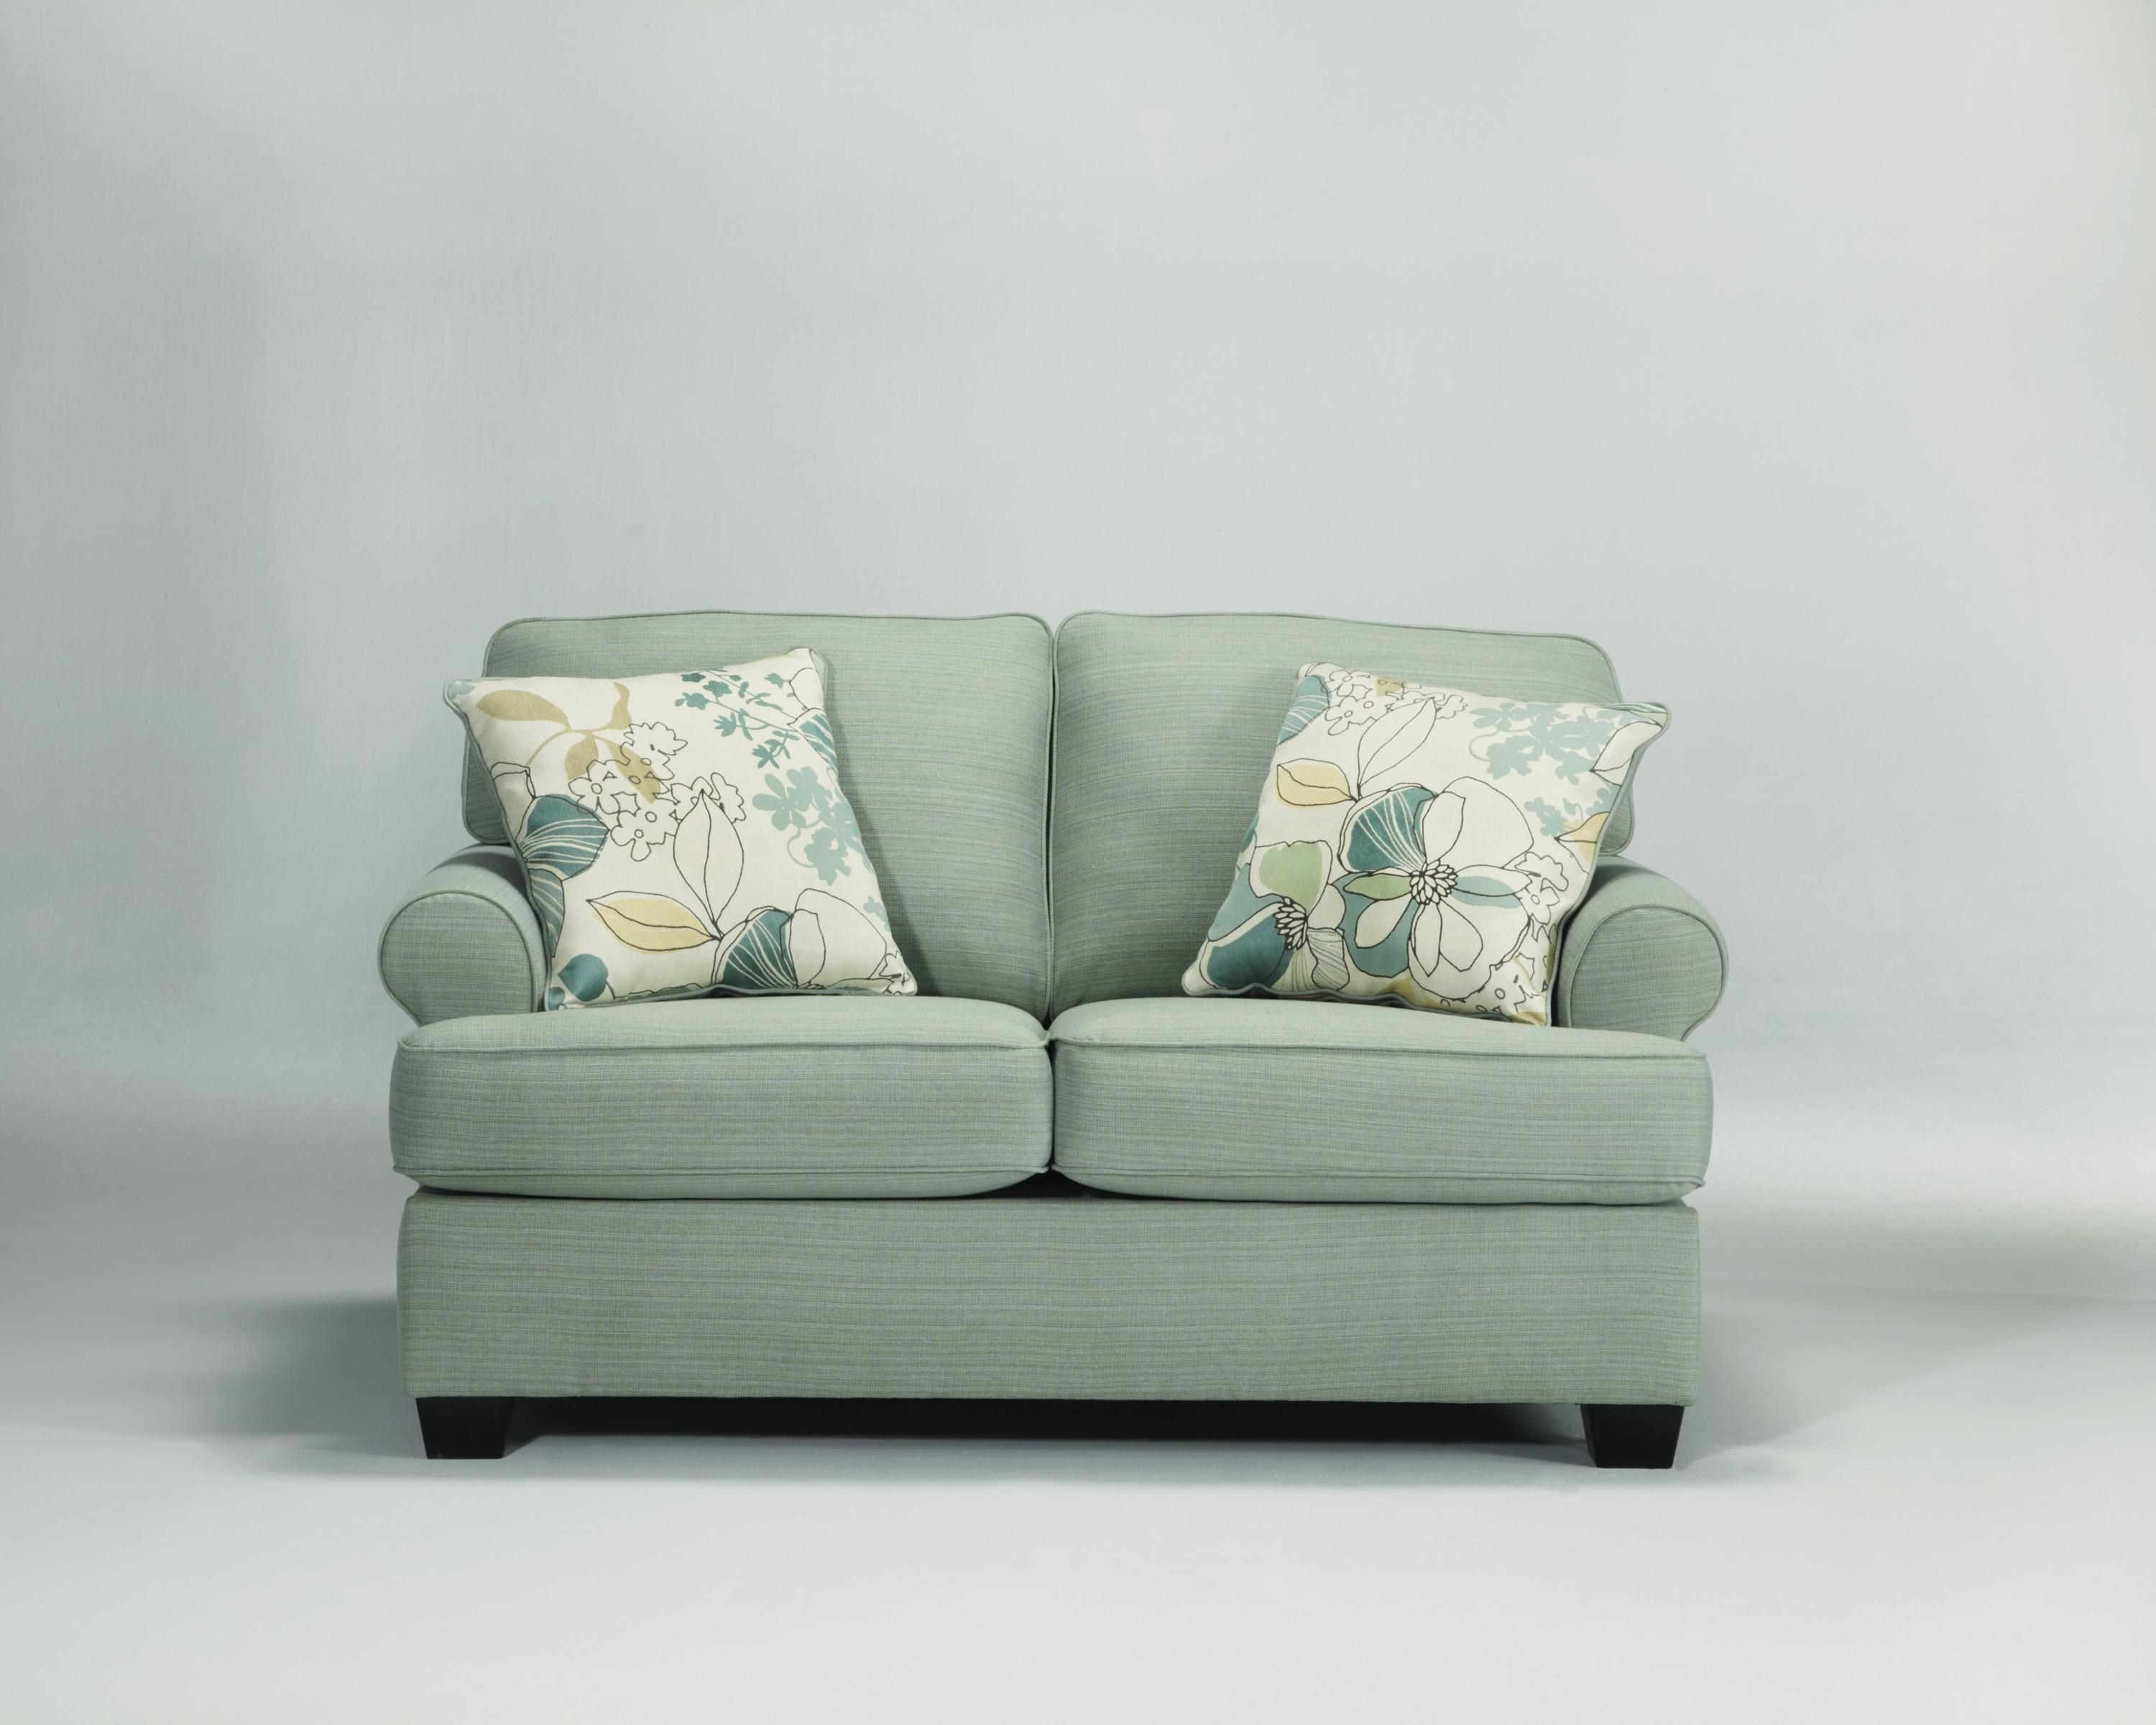 Seafoam Green Sofa With Ideas Hd Gallery 17483 | Kengire Throughout Seafoam Green Sofas (View 16 of 20)